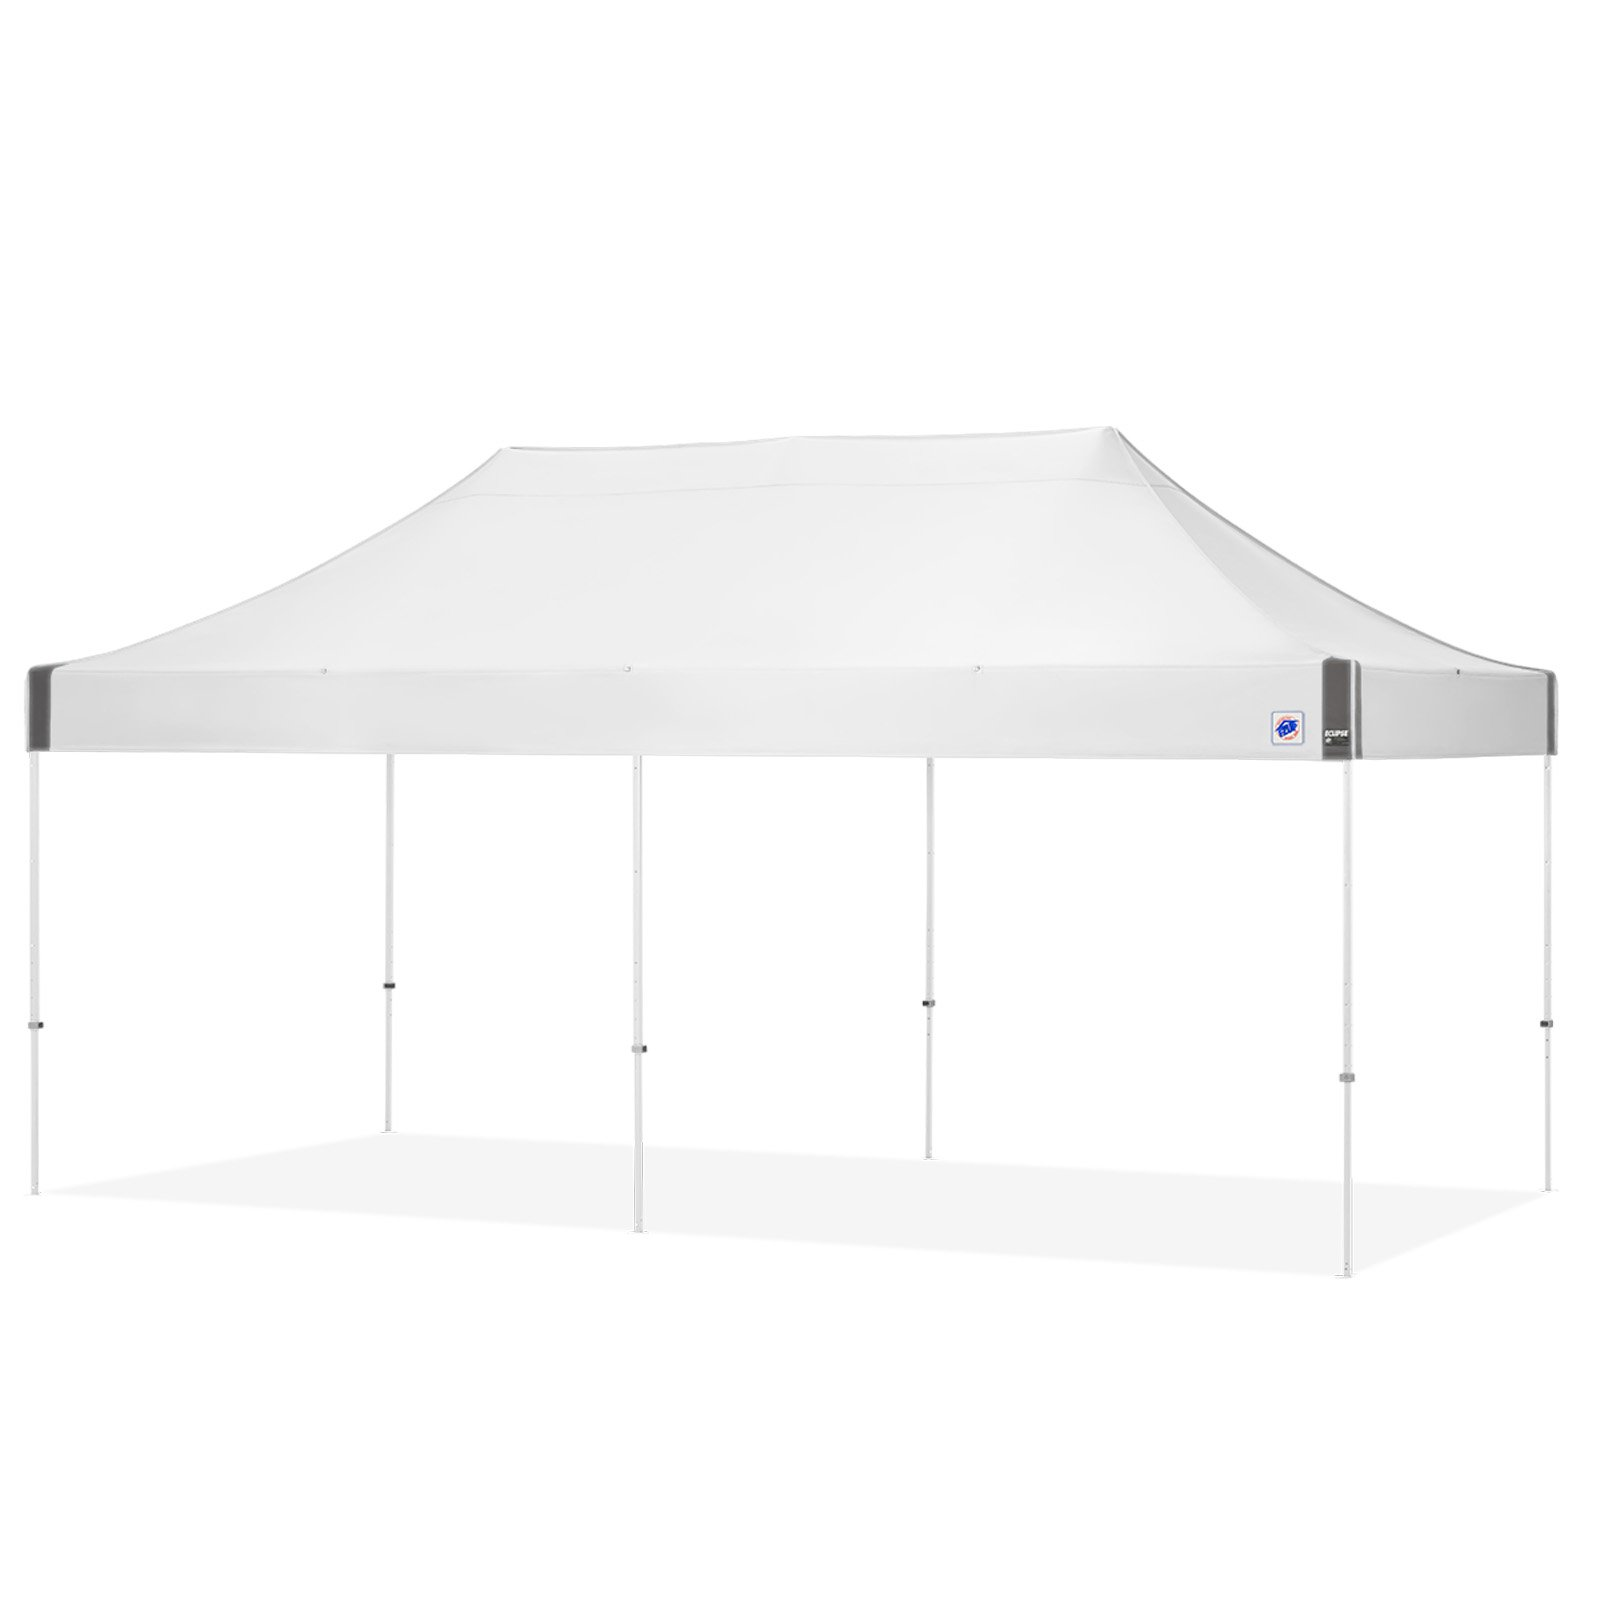 E-Z UP Eclipse 10 x 20 ft. Canopy with Carbon Steel Frame by International EZ UP Inc